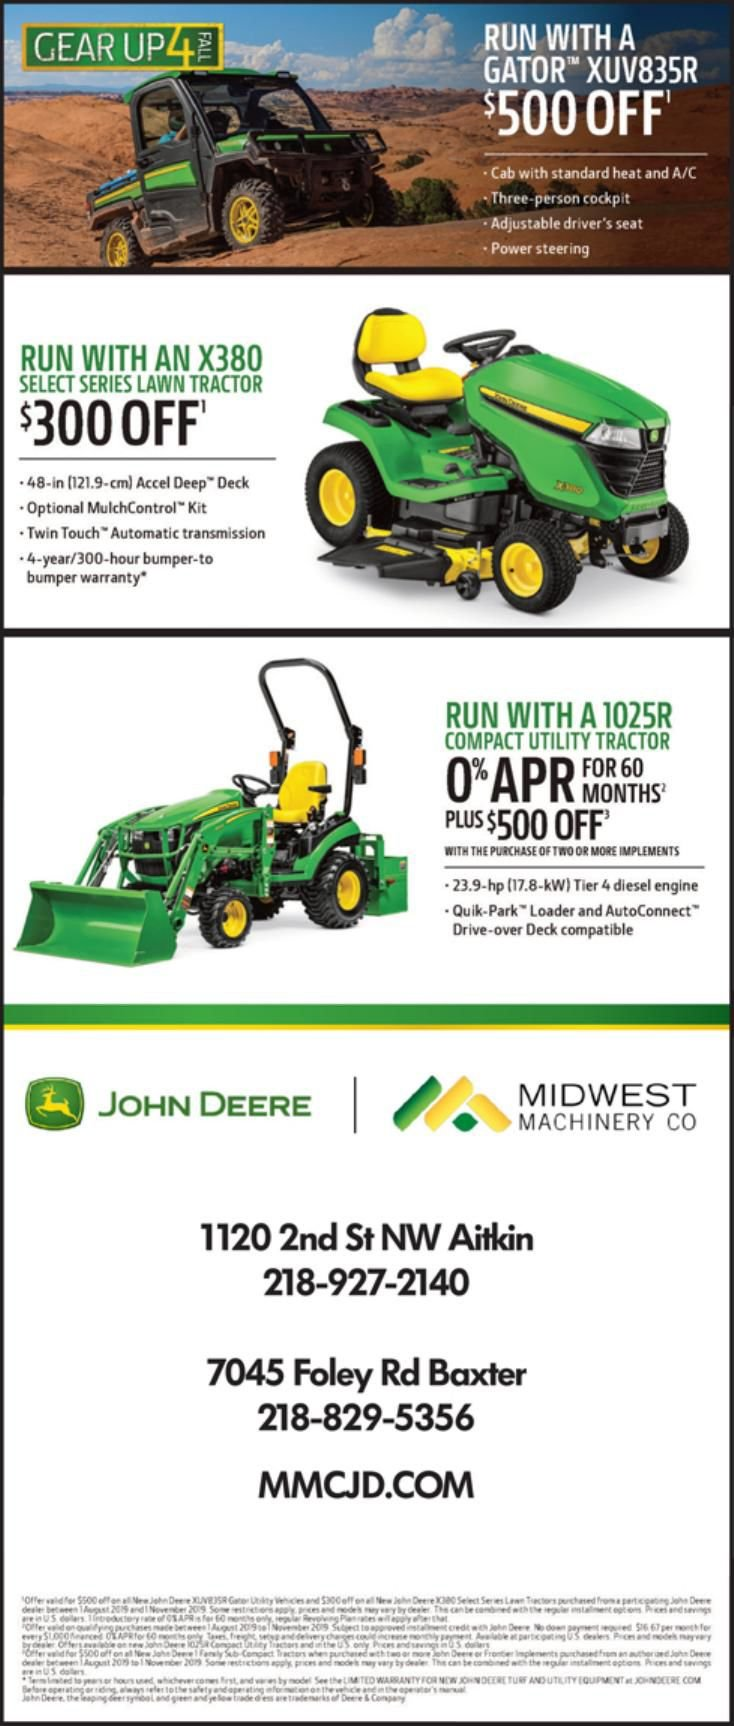 Midwest Machinery 090719 | | messagemedia co